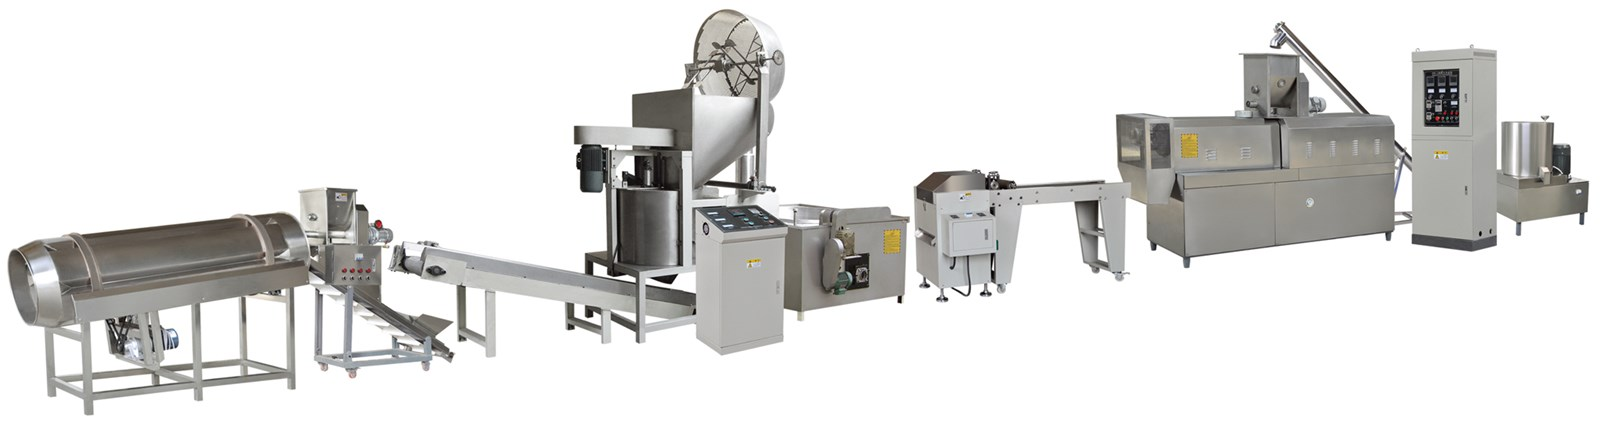 America Popular Hot Selling High Capacity Fried Potato Chips Making Machine